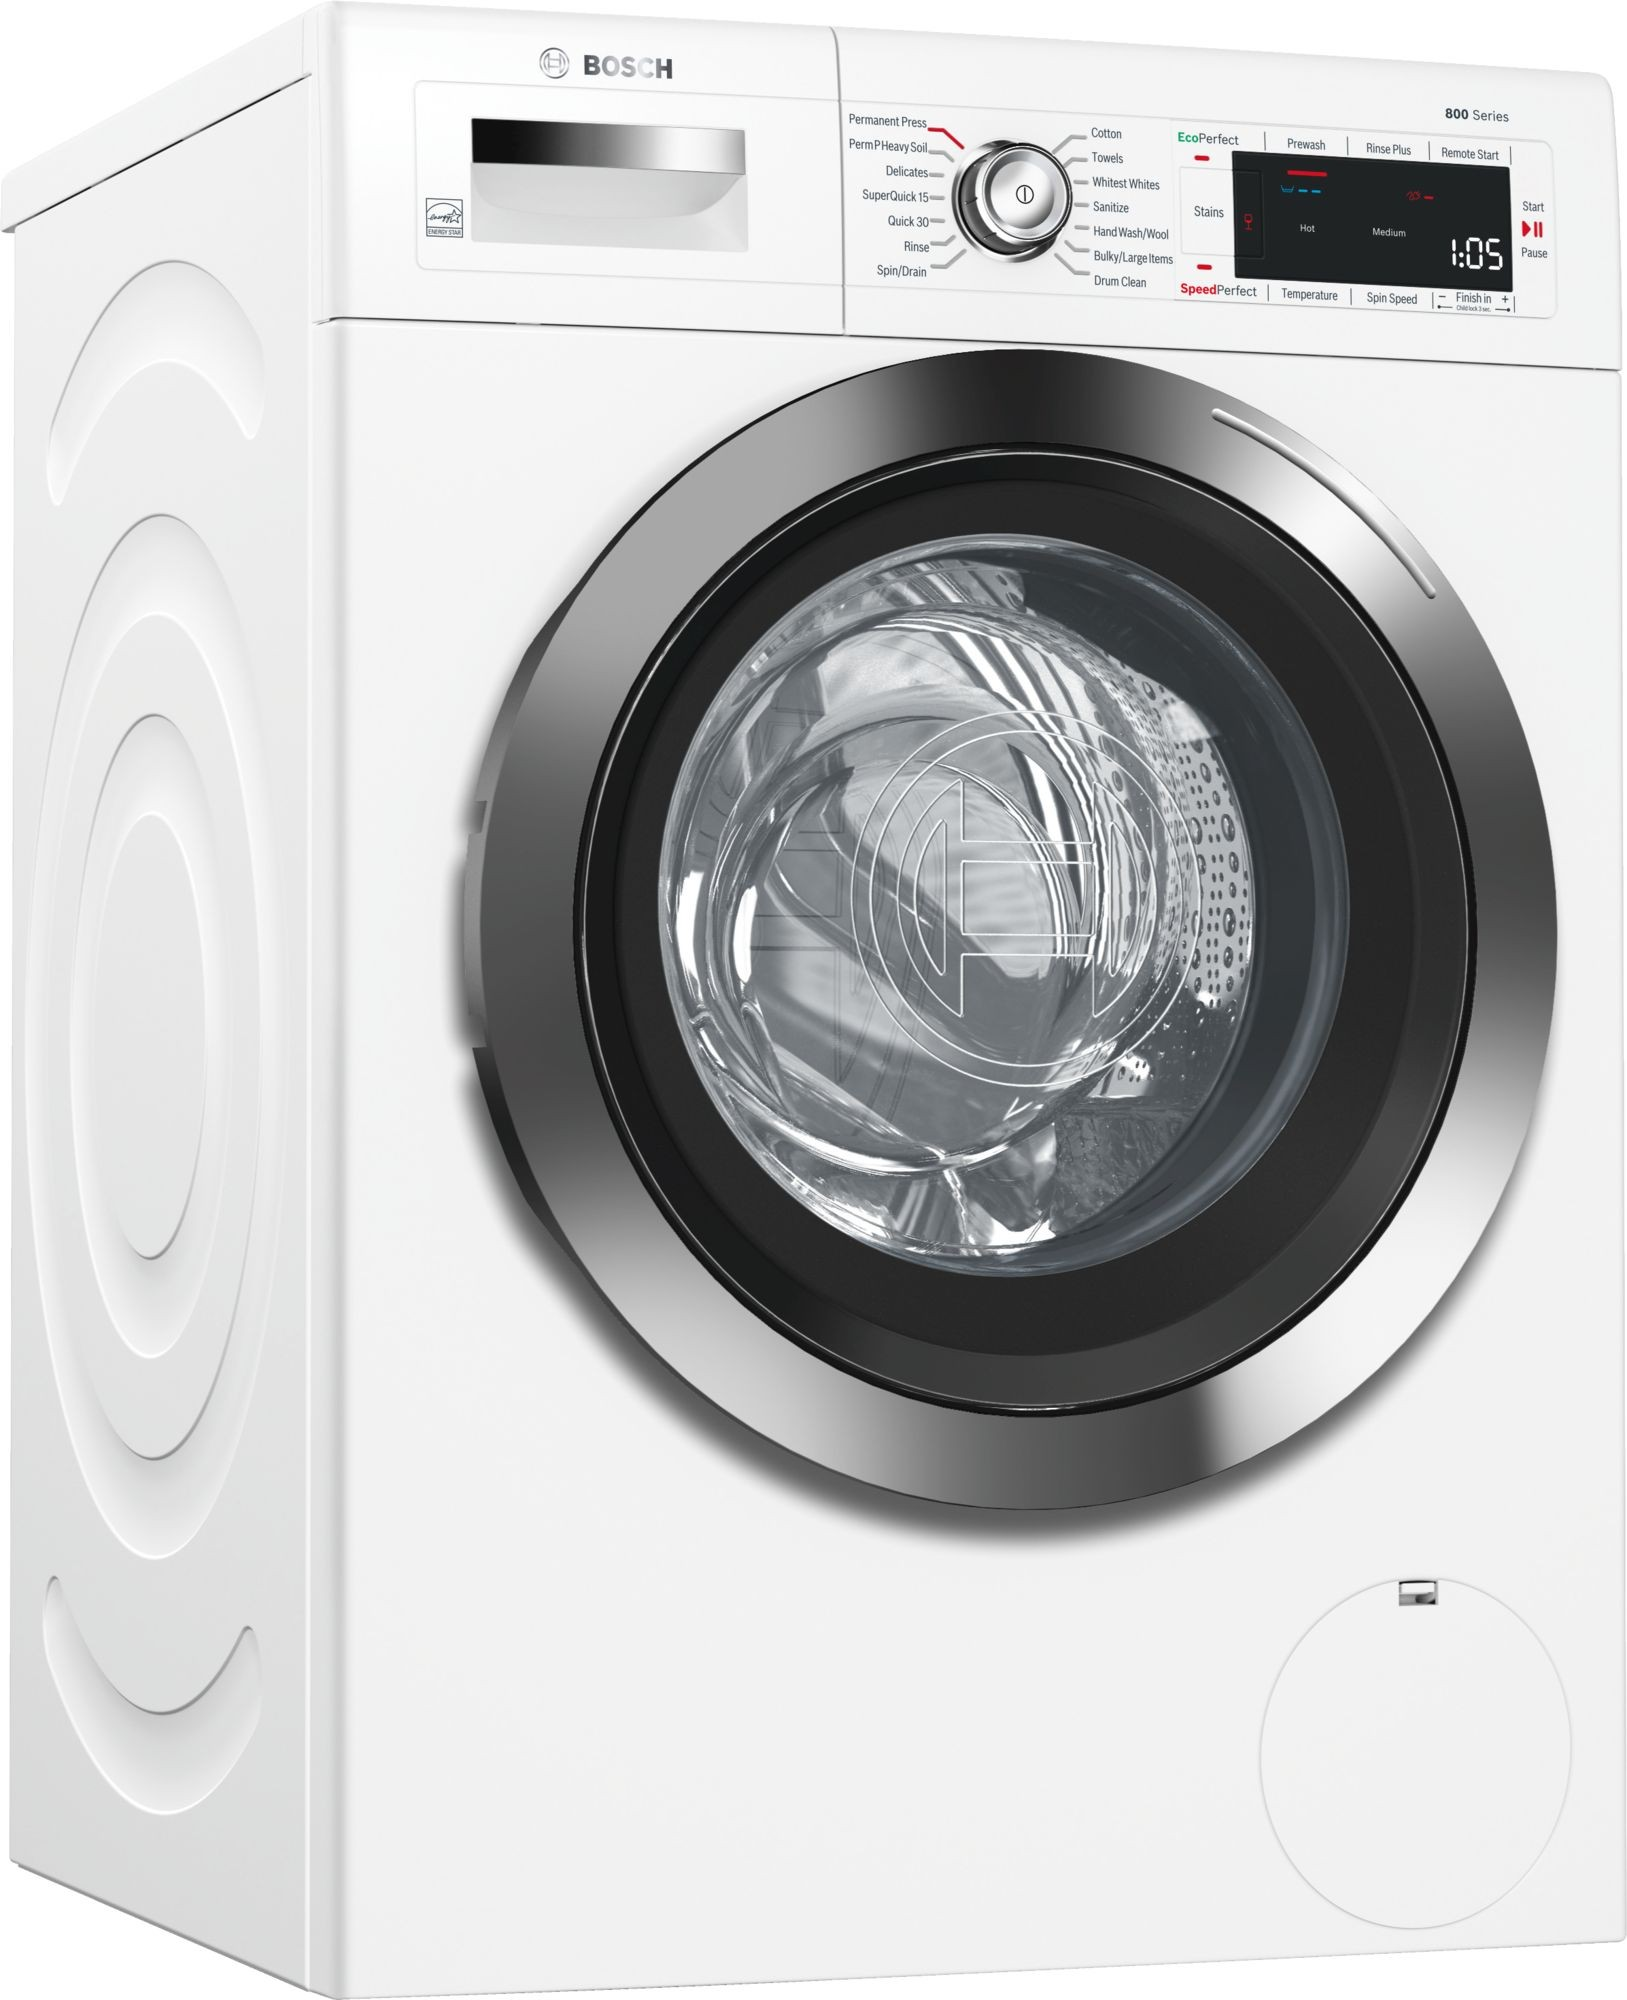 Image of Bosch 800 2.2 Cu. Ft. Front Load Washer WAW285H2UC